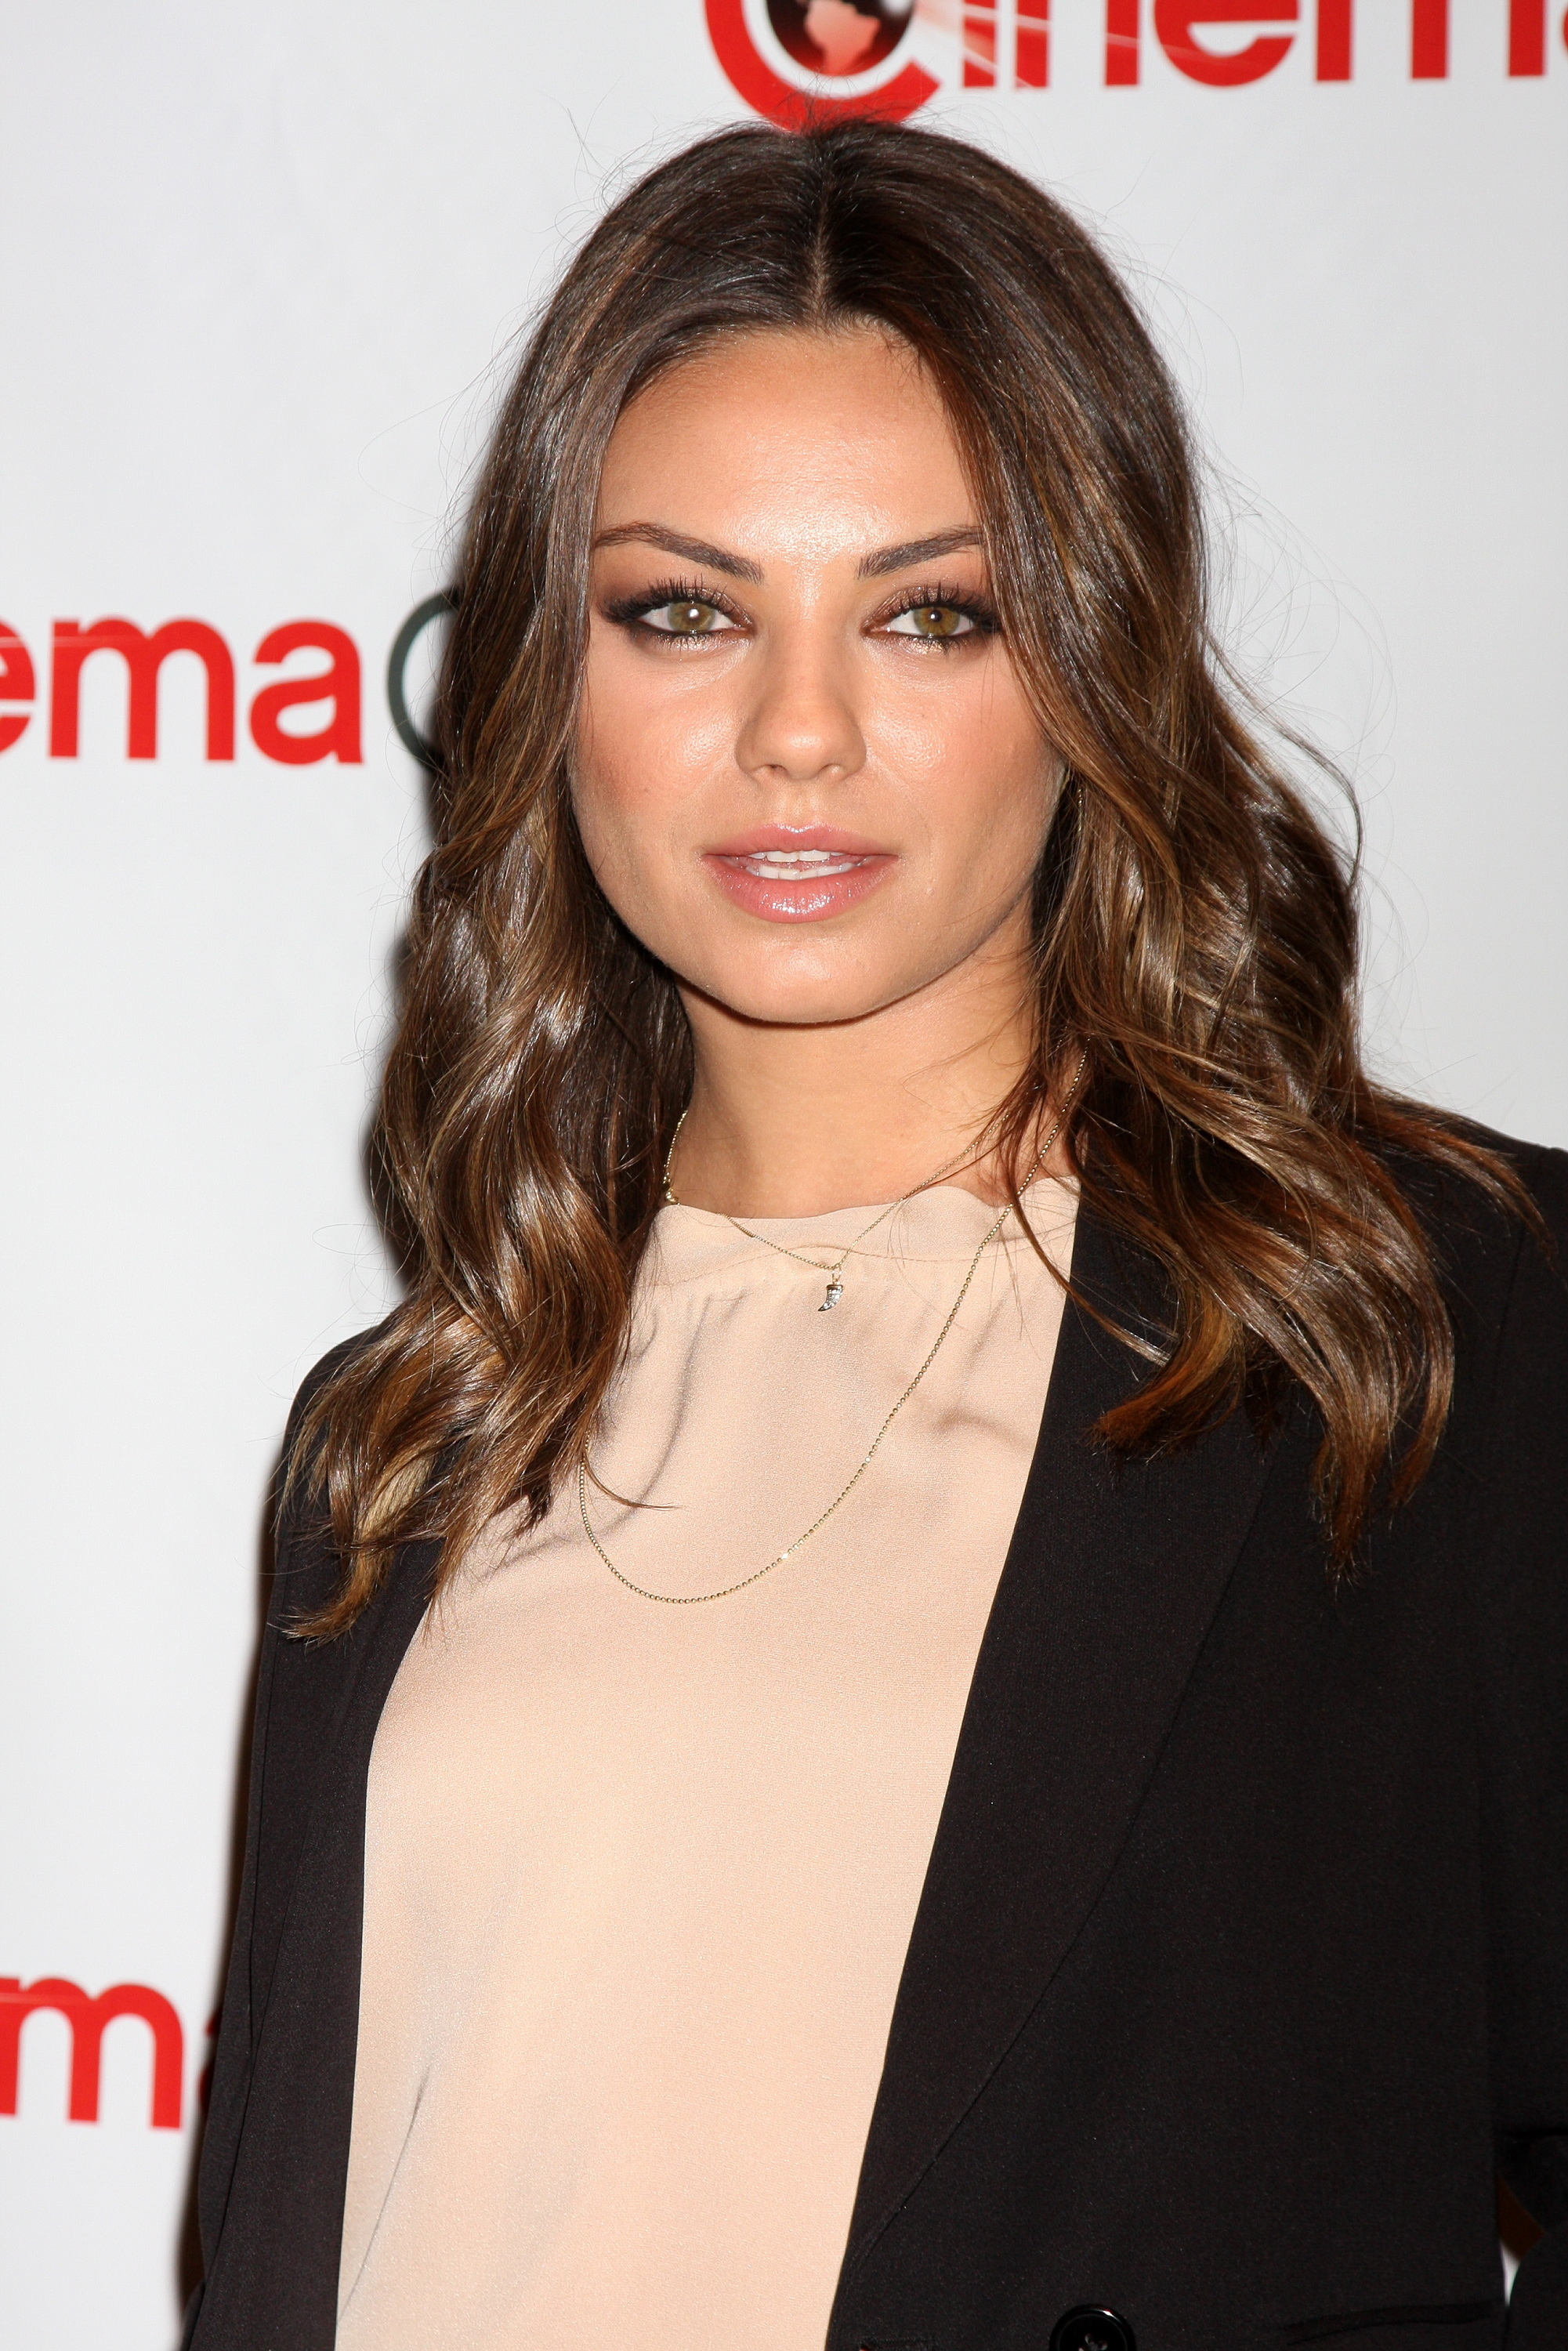 milas kunis dating Mila kunis and justin timberlake on dating and relationships and friends with benefits.